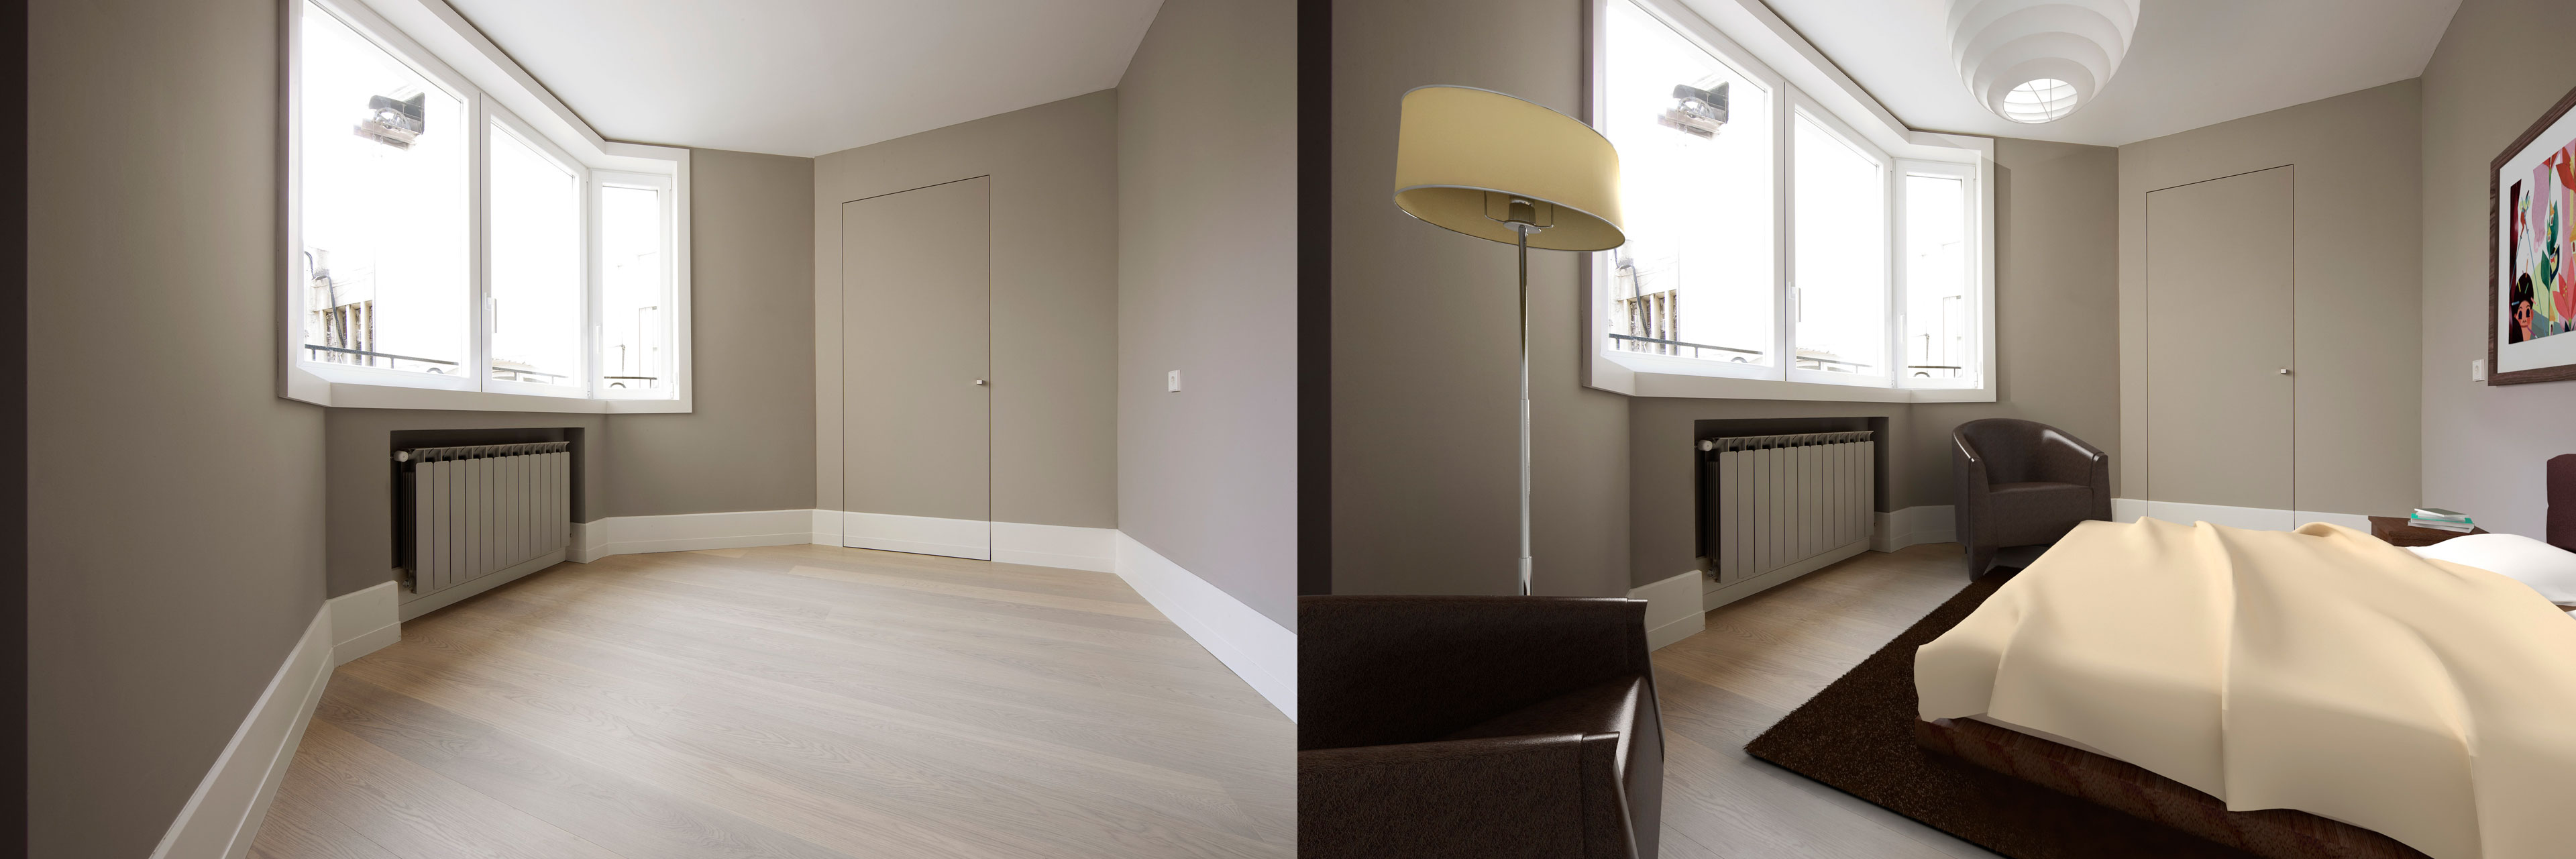 home staging virtual antes después dormitorio exemple